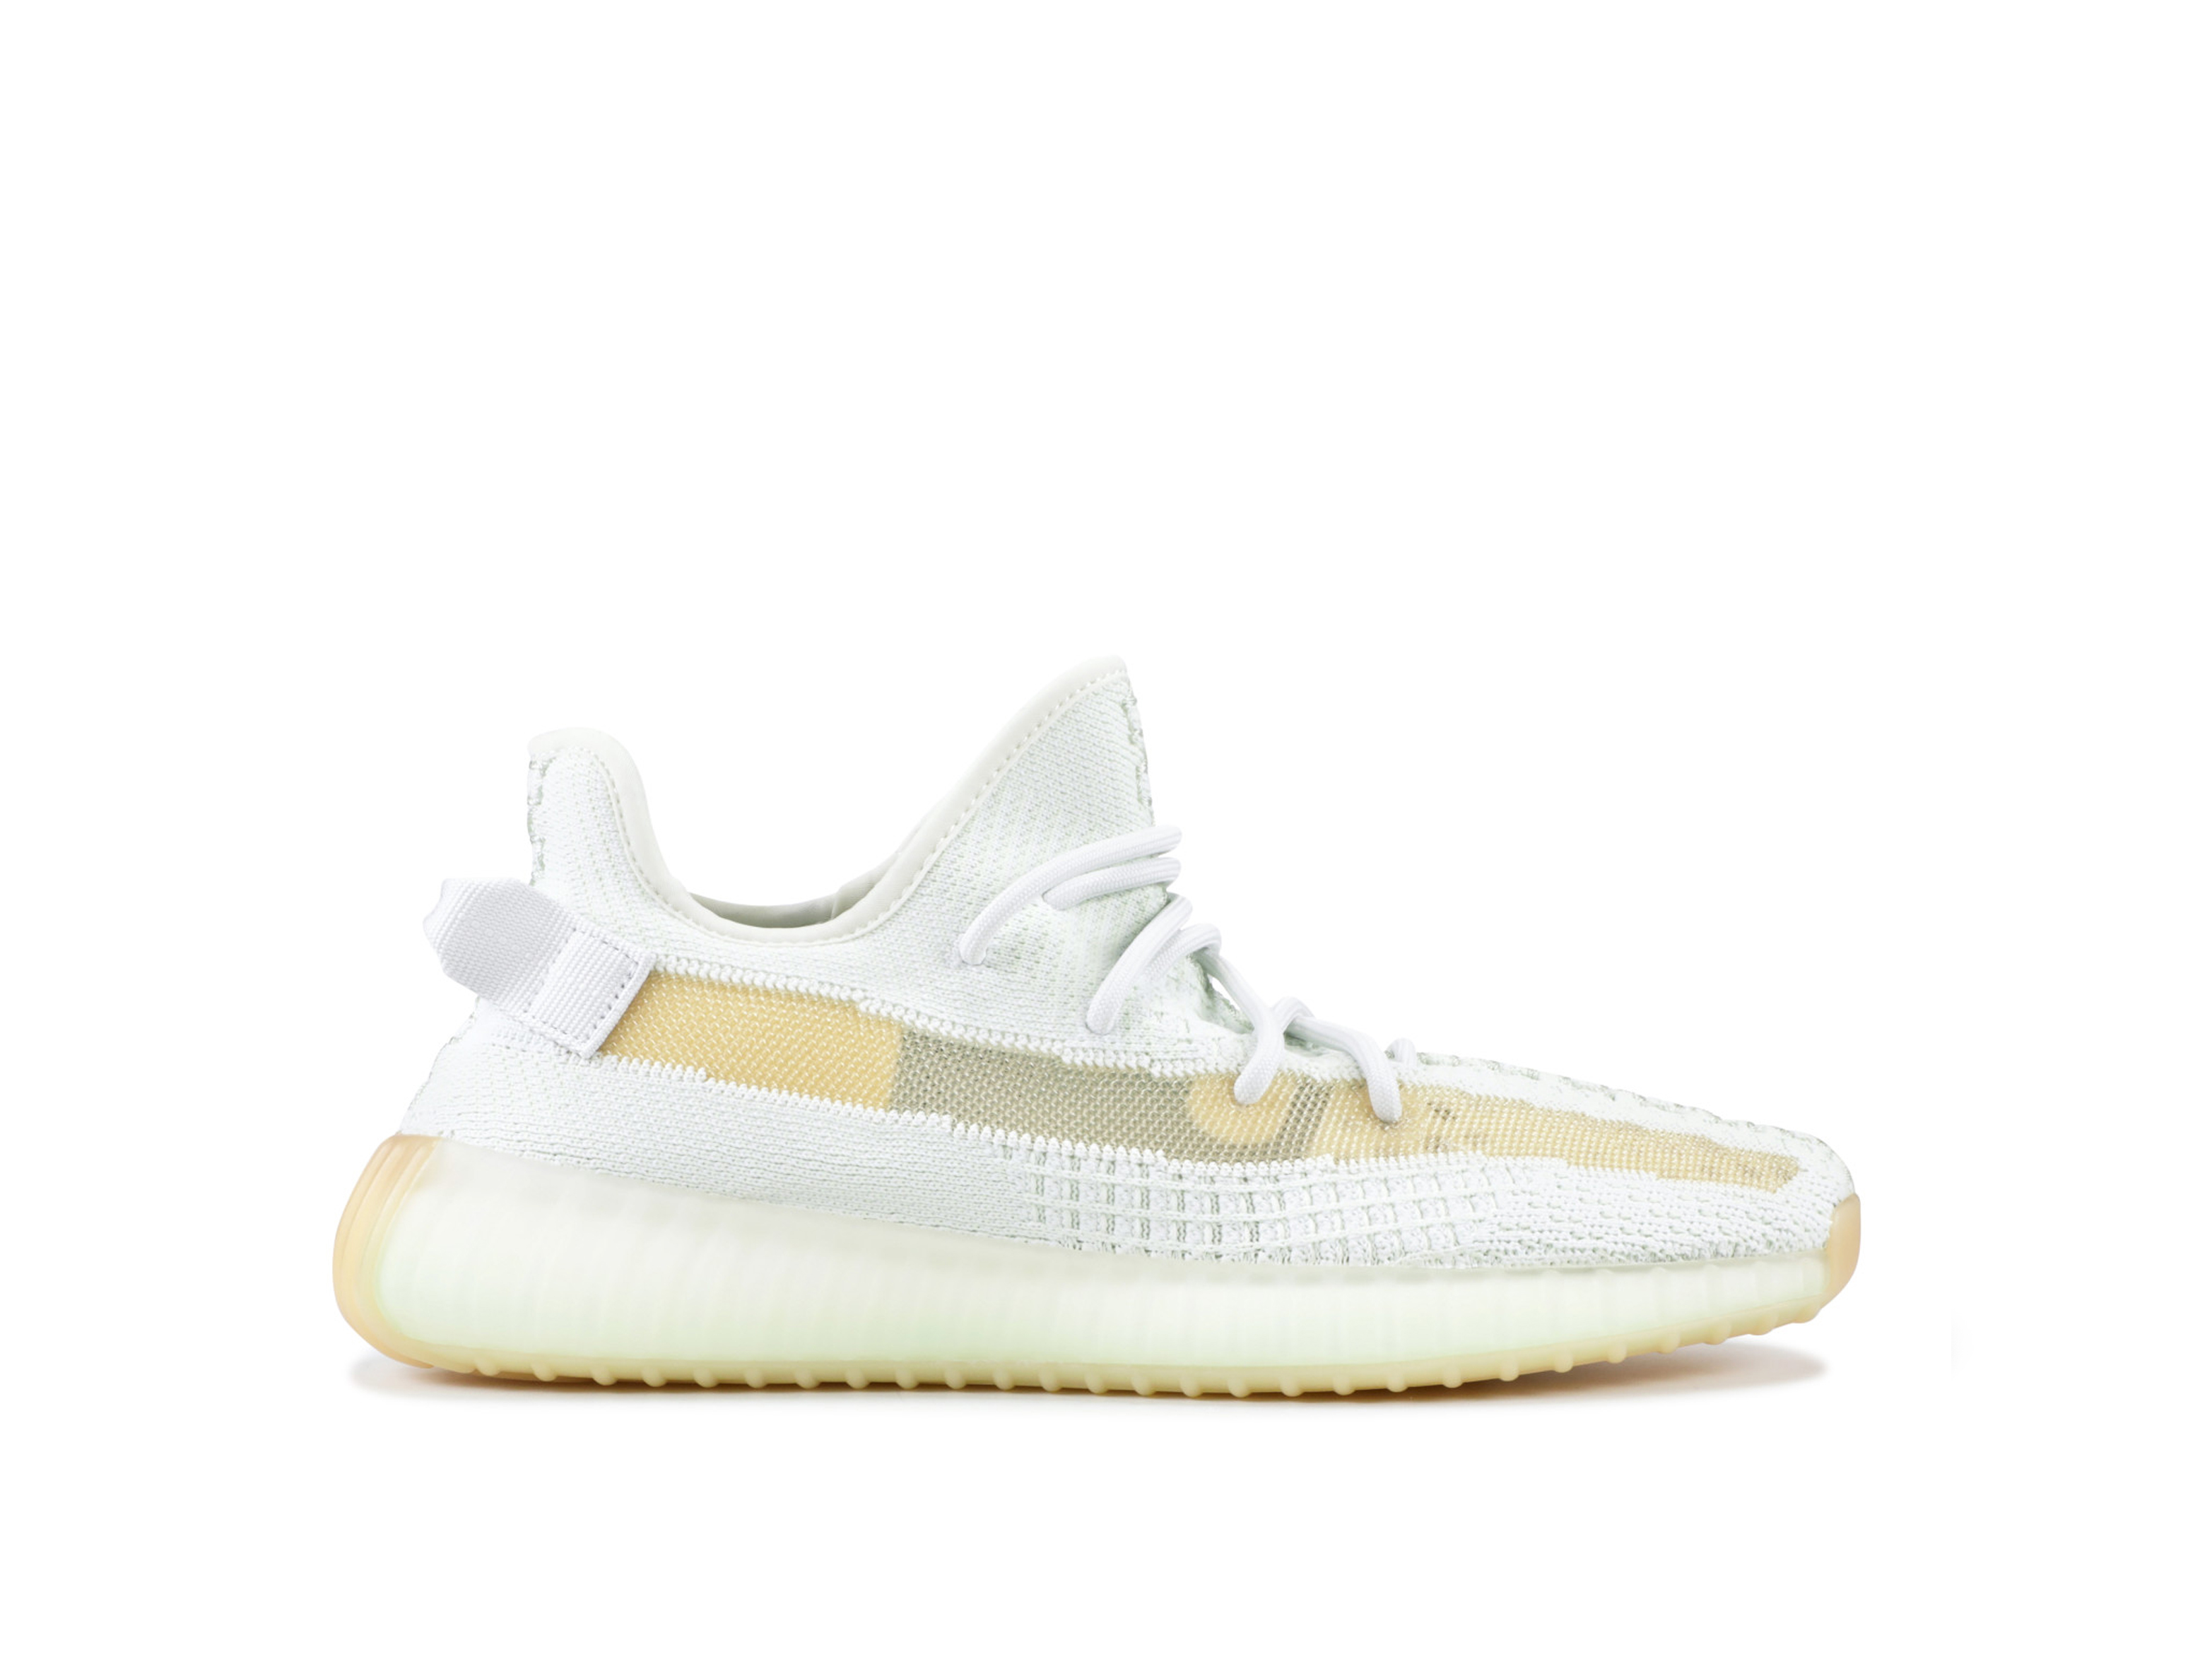 Cheap Yeezy 350 V2 Hyperspace, Fake